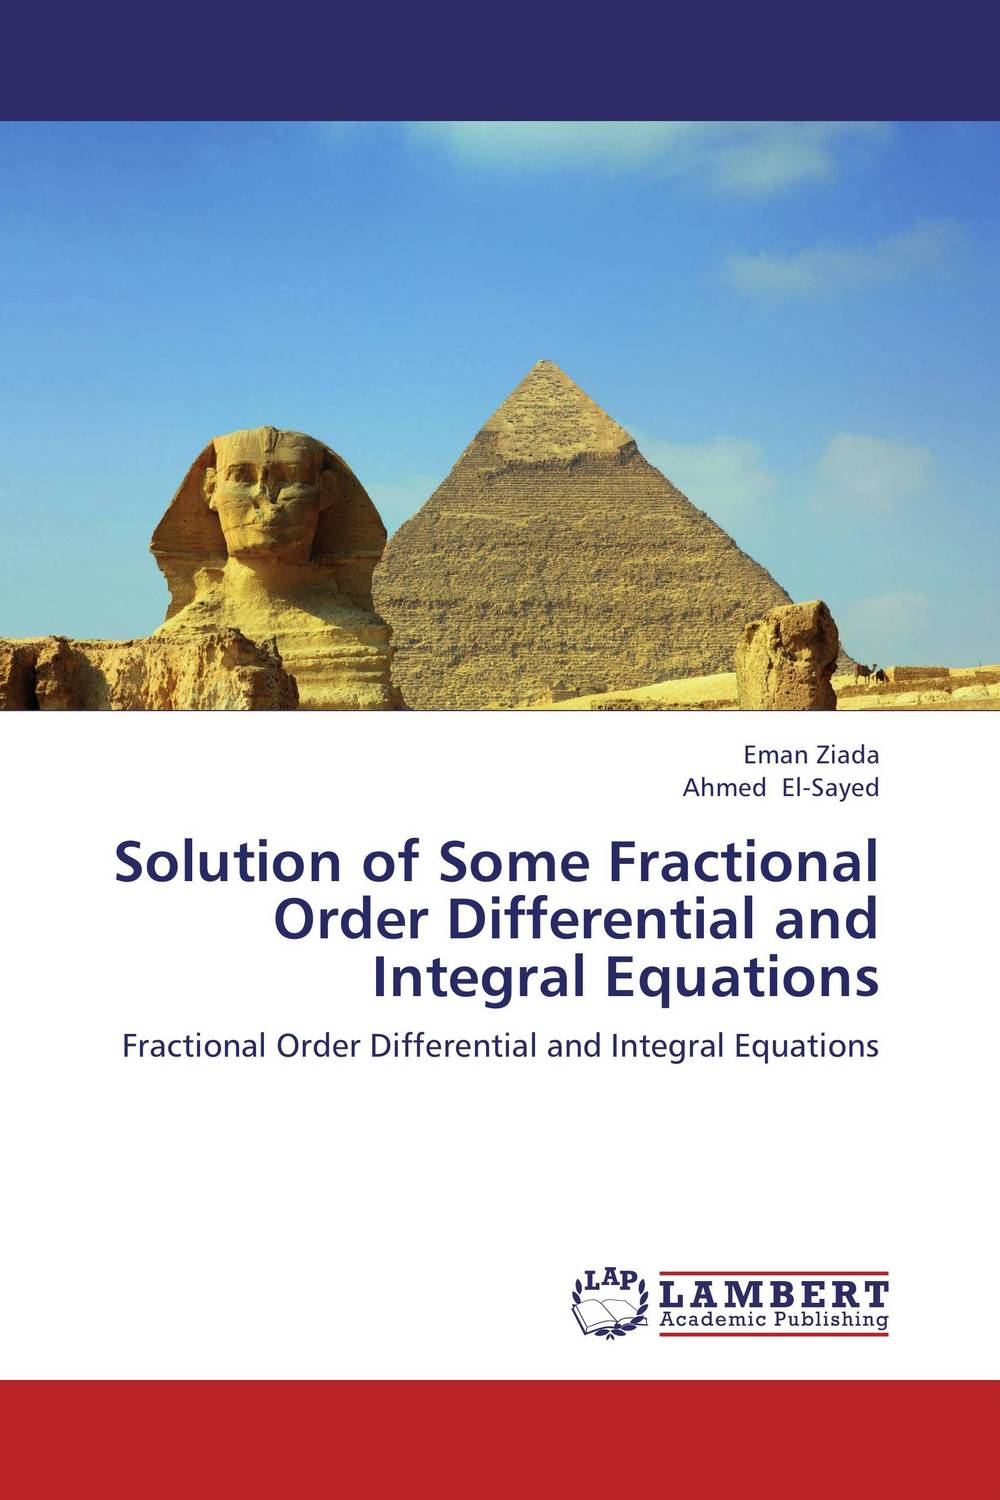 Solution of Some Fractional Order Differential and Integral Equations collocation methods for volterra integral and related functional differential equations